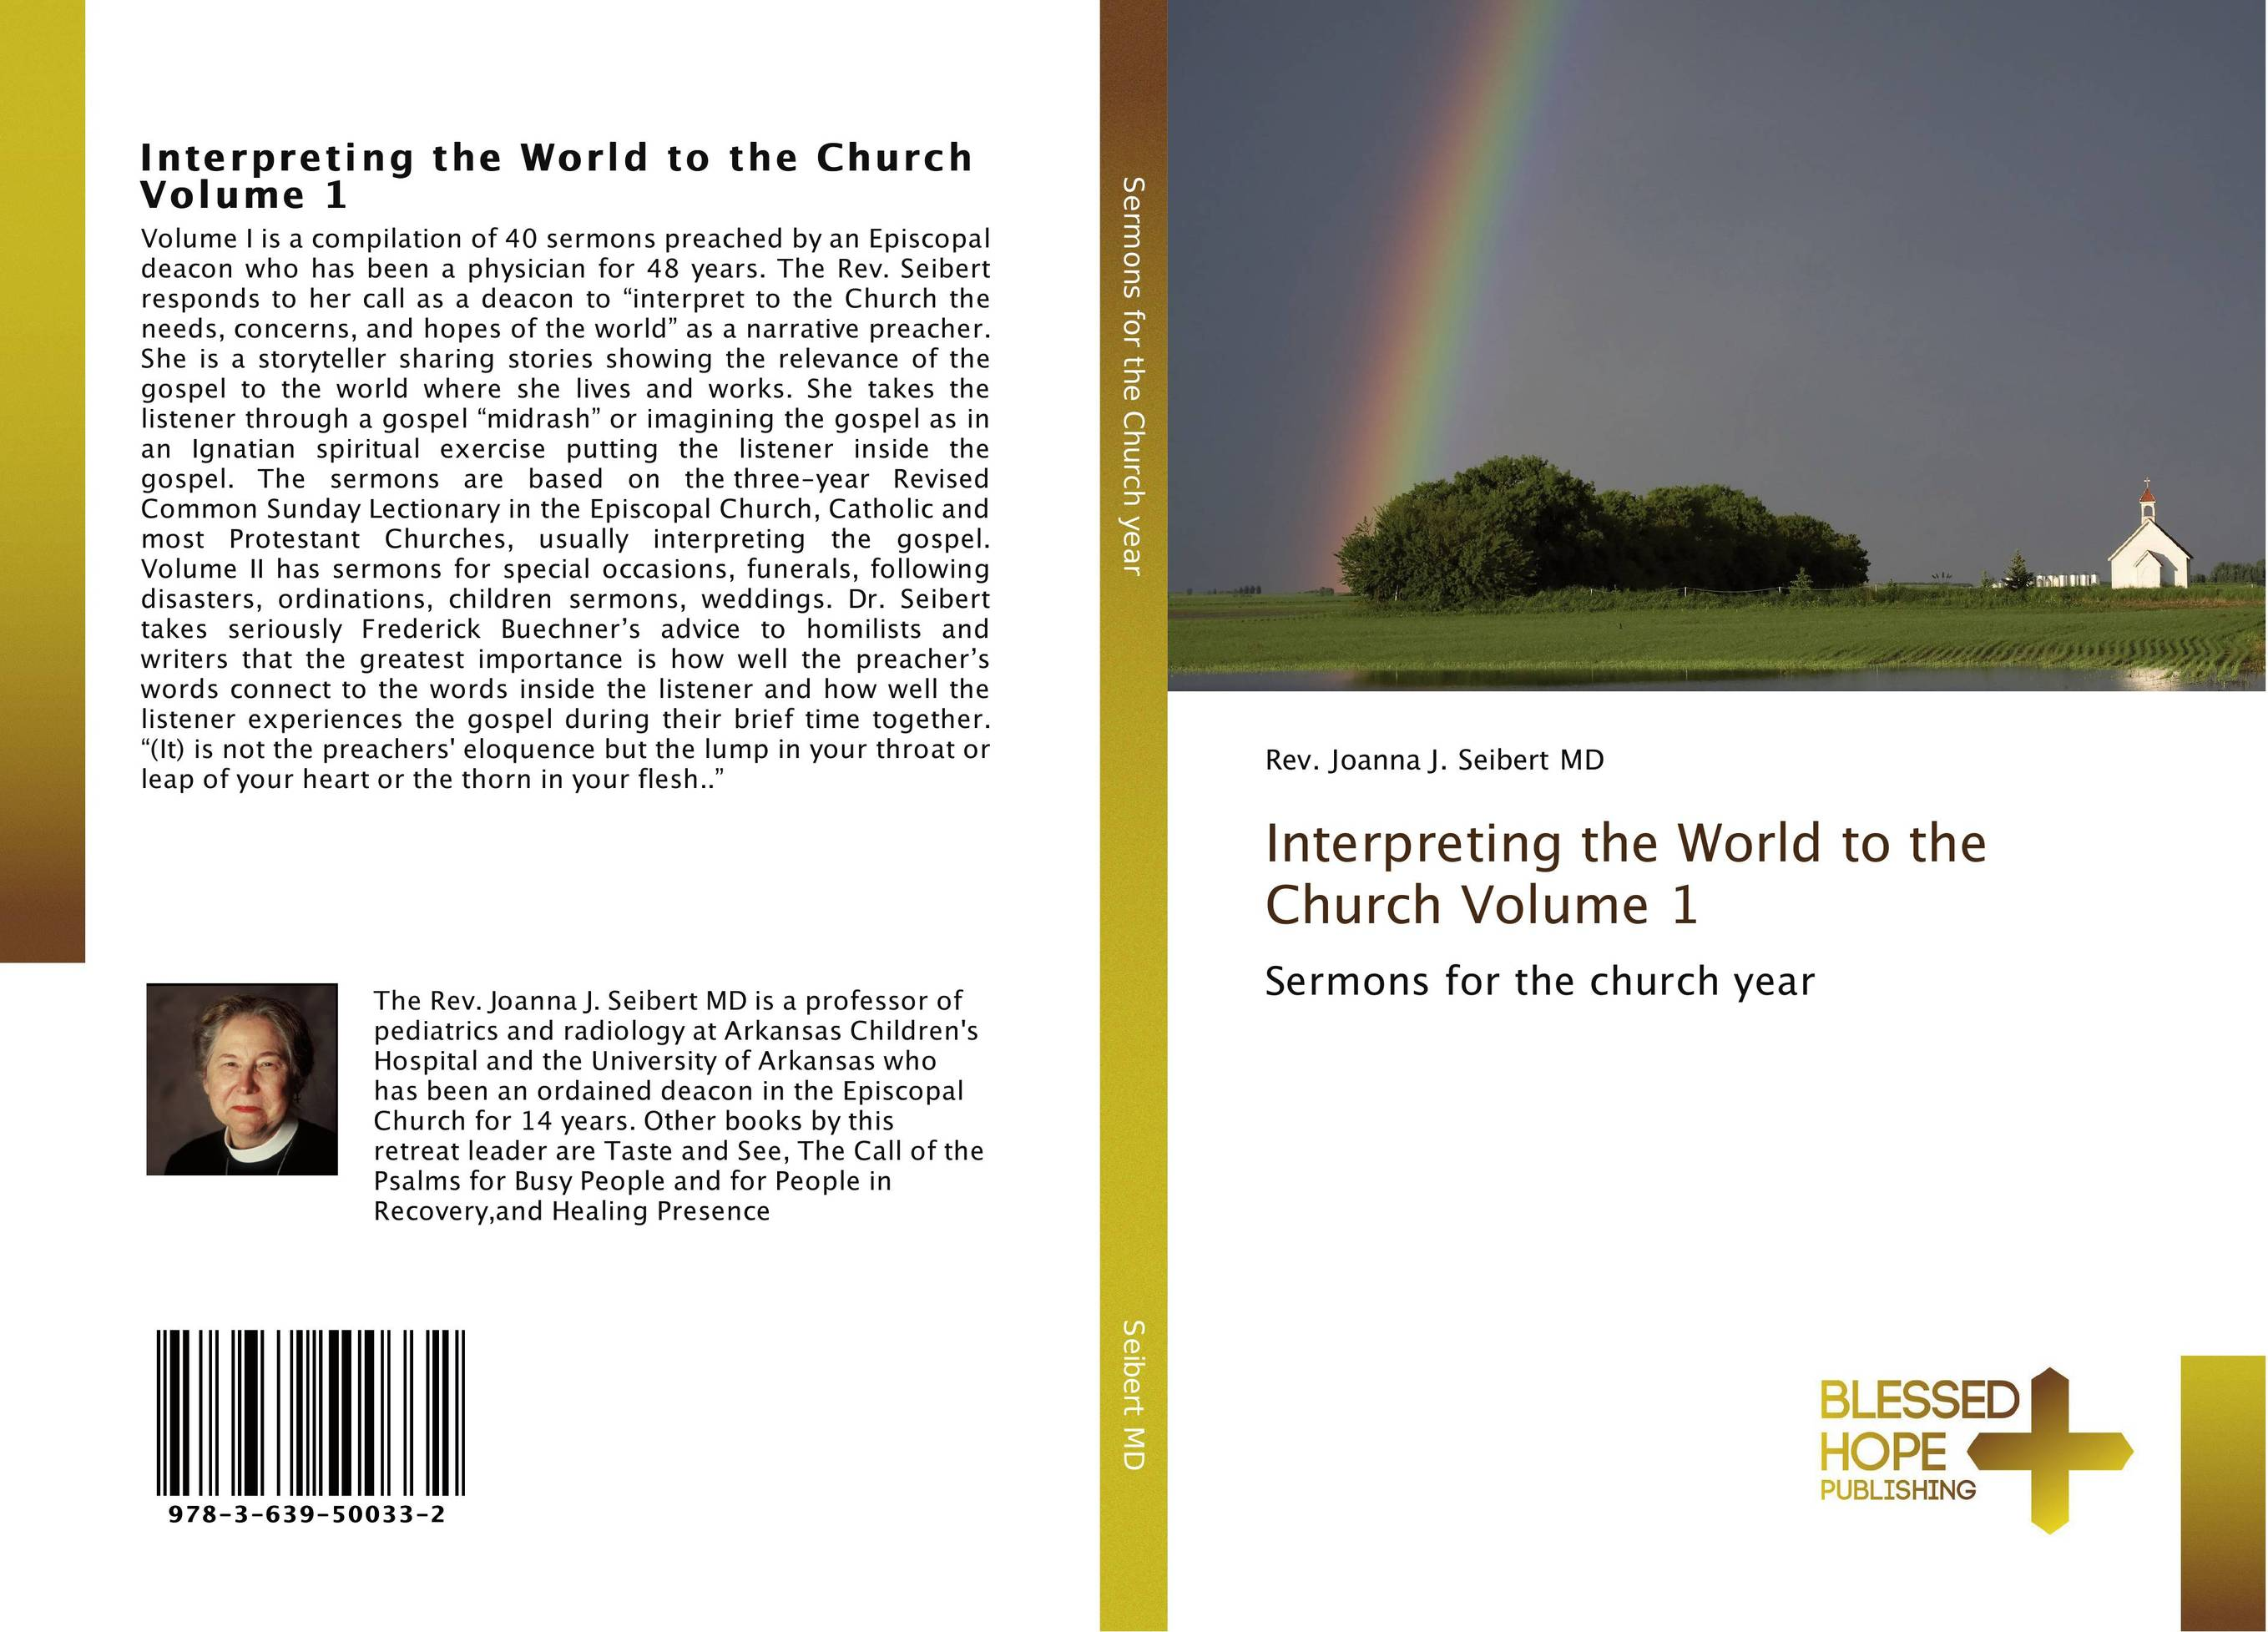 Interpreting the World to the Church Volume 1 the salmon who dared to leap higher